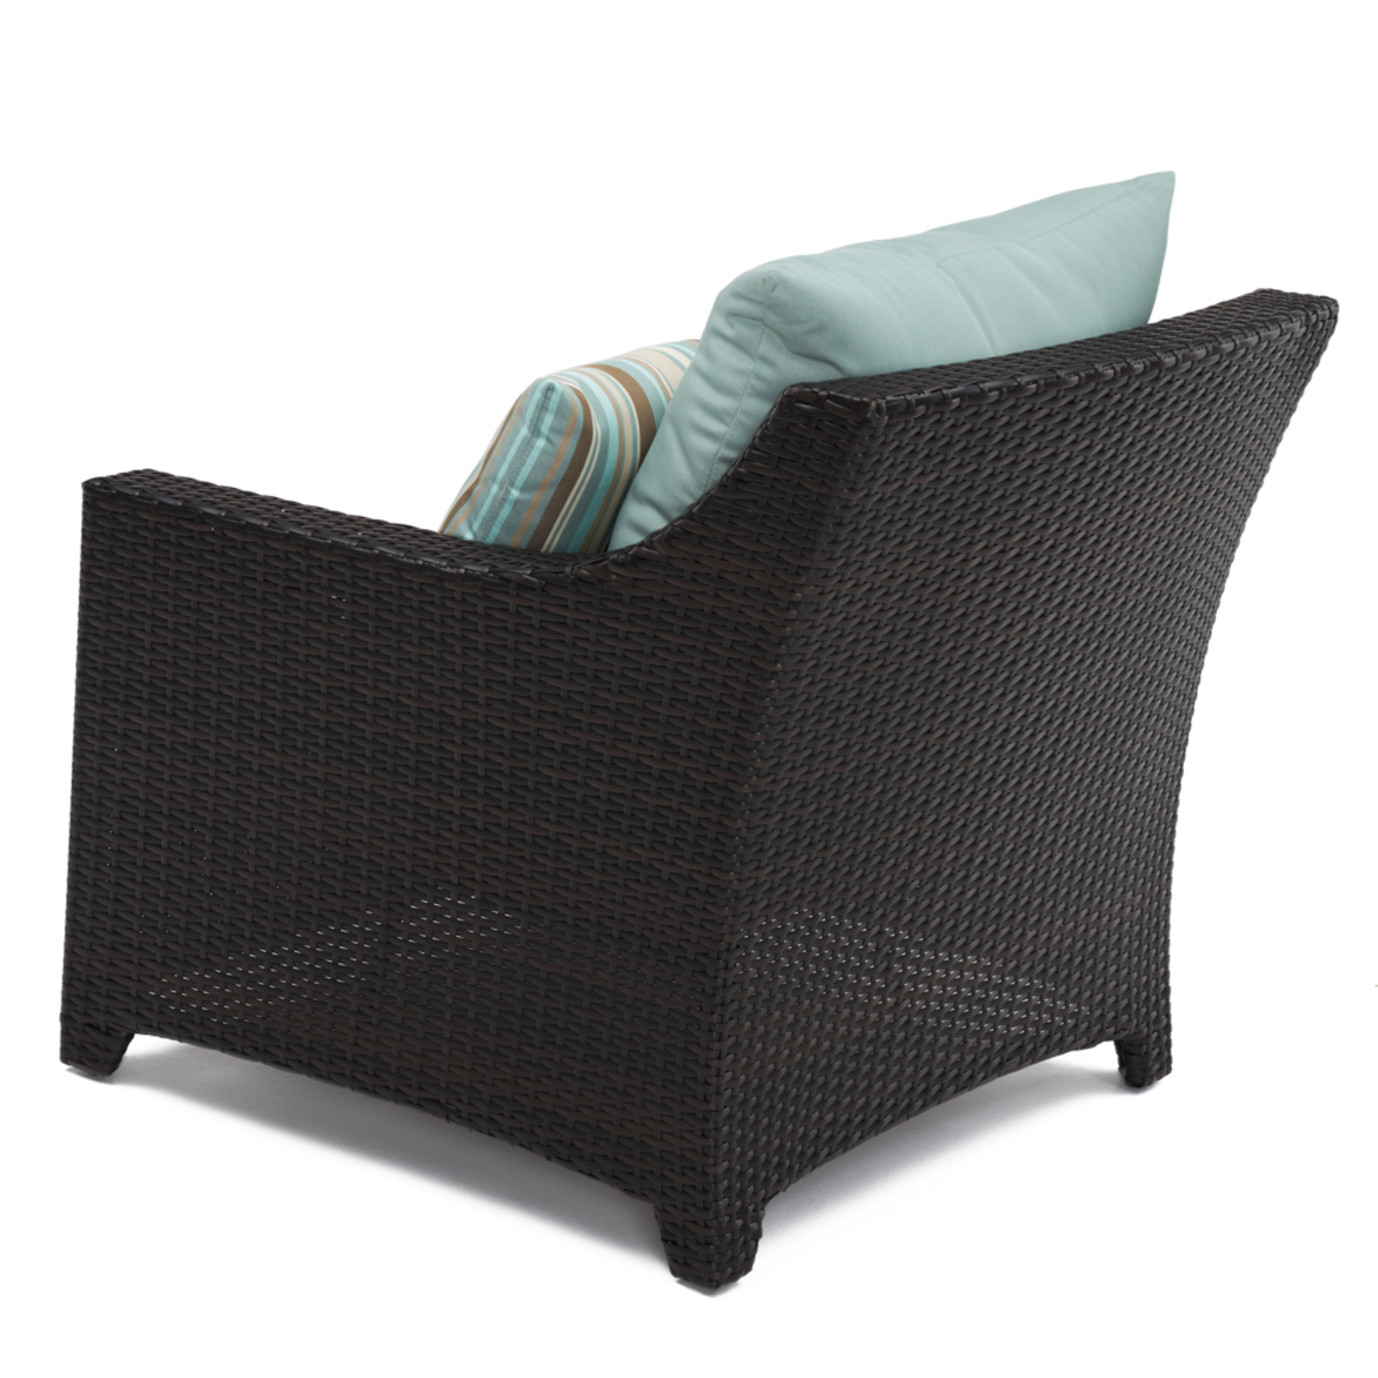 Deco™ Club Chairs and Side Table - Bliss Blue